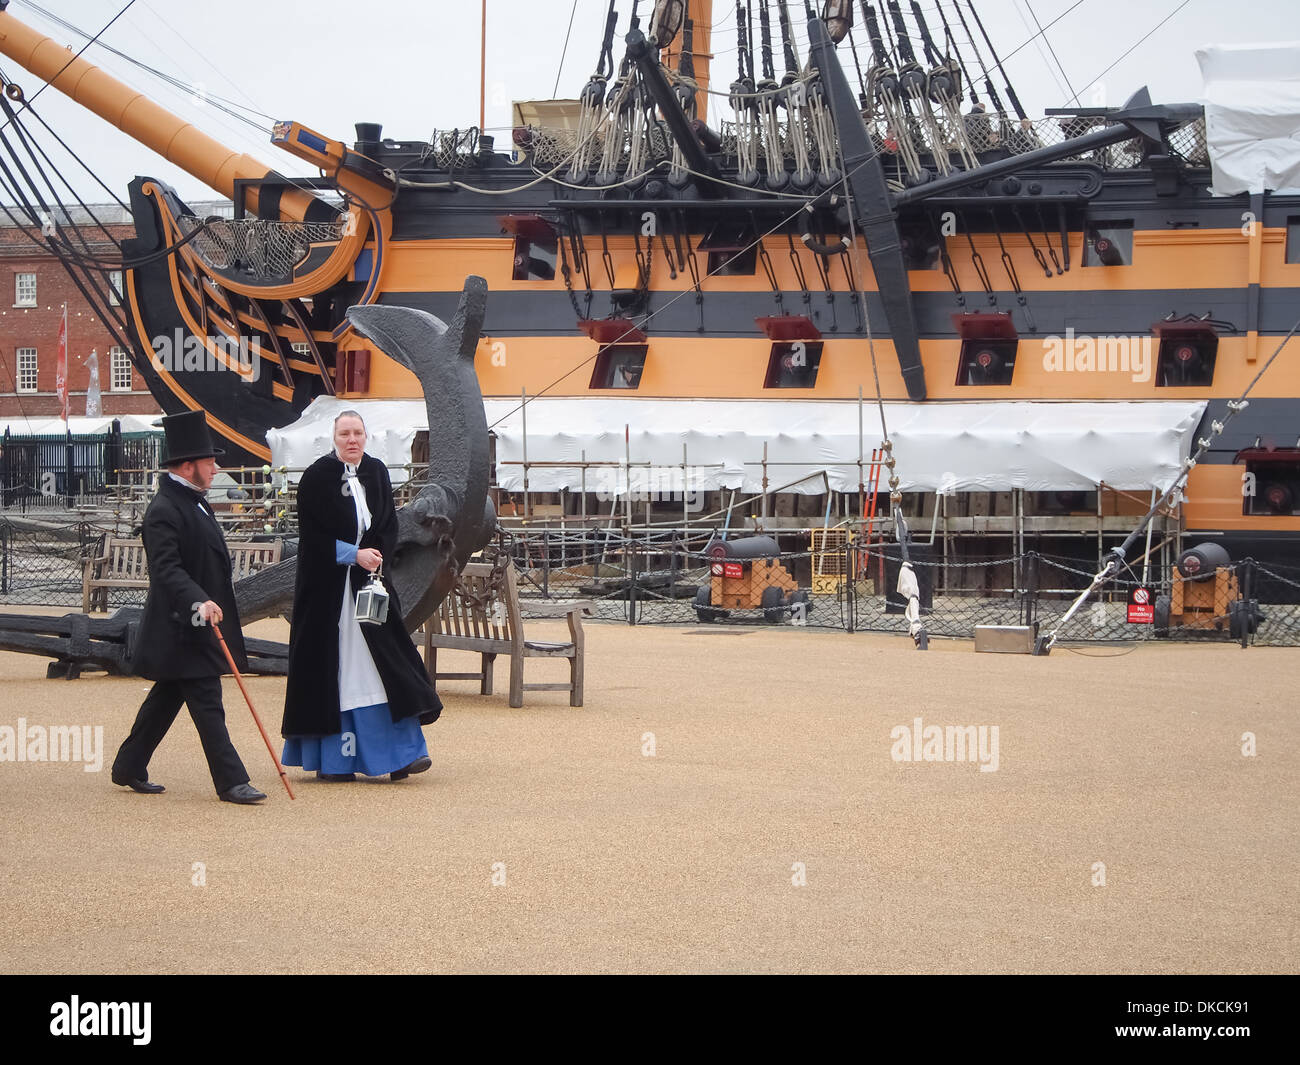 Actors in Victorian costume walk past HMS Victory in Portsmouth Historic Dockyard, England Stock Photo